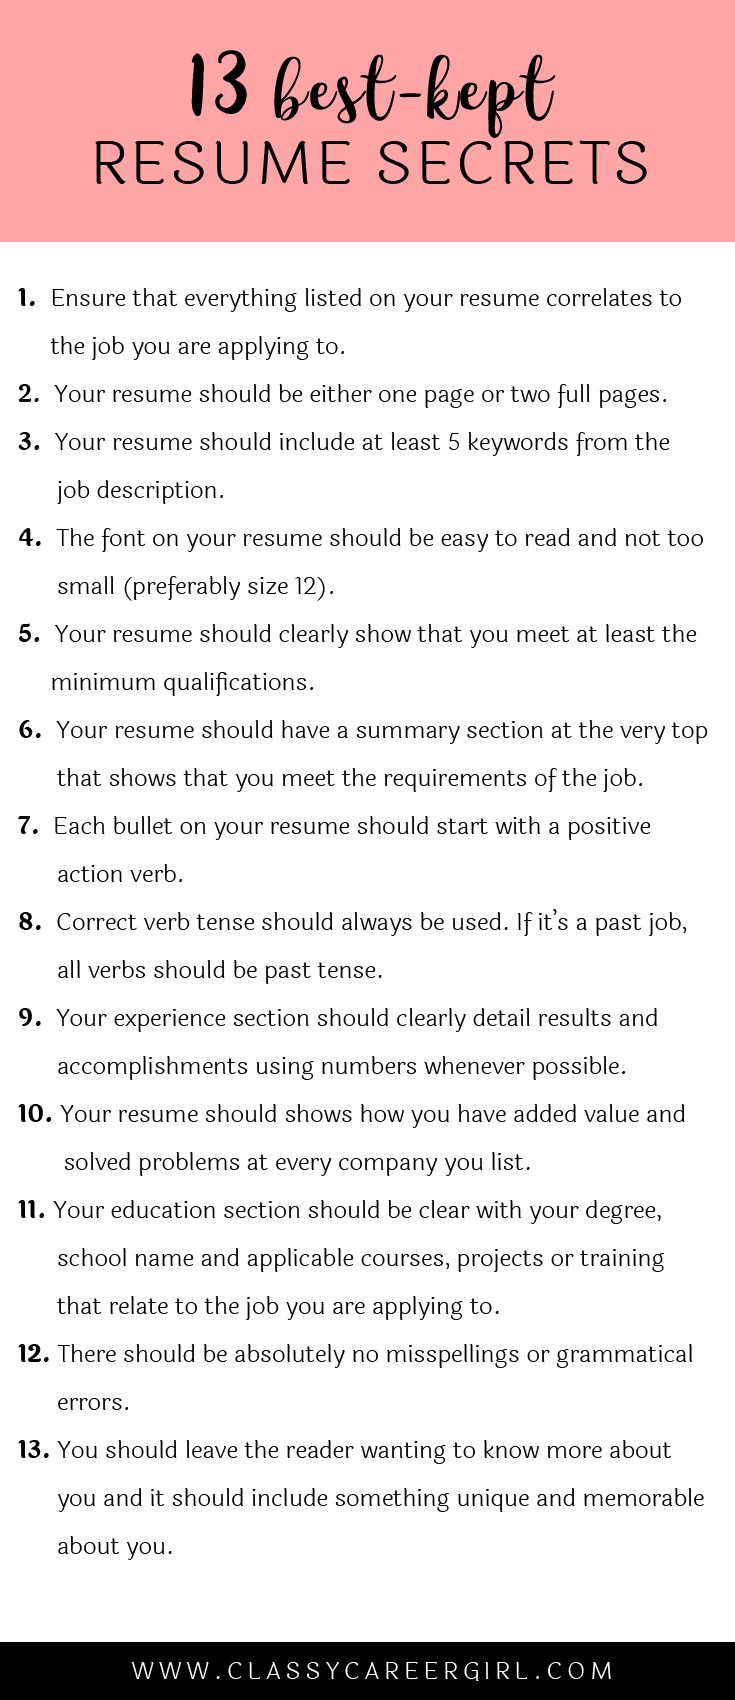 Opposenewapstandardsus  Terrific  Ideas About Resume On Pinterest  Cv Format Resume Cv And  With Lovable Some Hiring Managers Will Toss Your Resume Out If You Dont Know These  With Charming Work History On Resume Also Great Resumes Examples In Addition Resume Examples College Students And Types Of Skills To Put On A Resume As Well As Submit Your Resume Additionally Caregiver Sample Resume From Pinterestcom With Opposenewapstandardsus  Lovable  Ideas About Resume On Pinterest  Cv Format Resume Cv And  With Charming Some Hiring Managers Will Toss Your Resume Out If You Dont Know These  And Terrific Work History On Resume Also Great Resumes Examples In Addition Resume Examples College Students From Pinterestcom